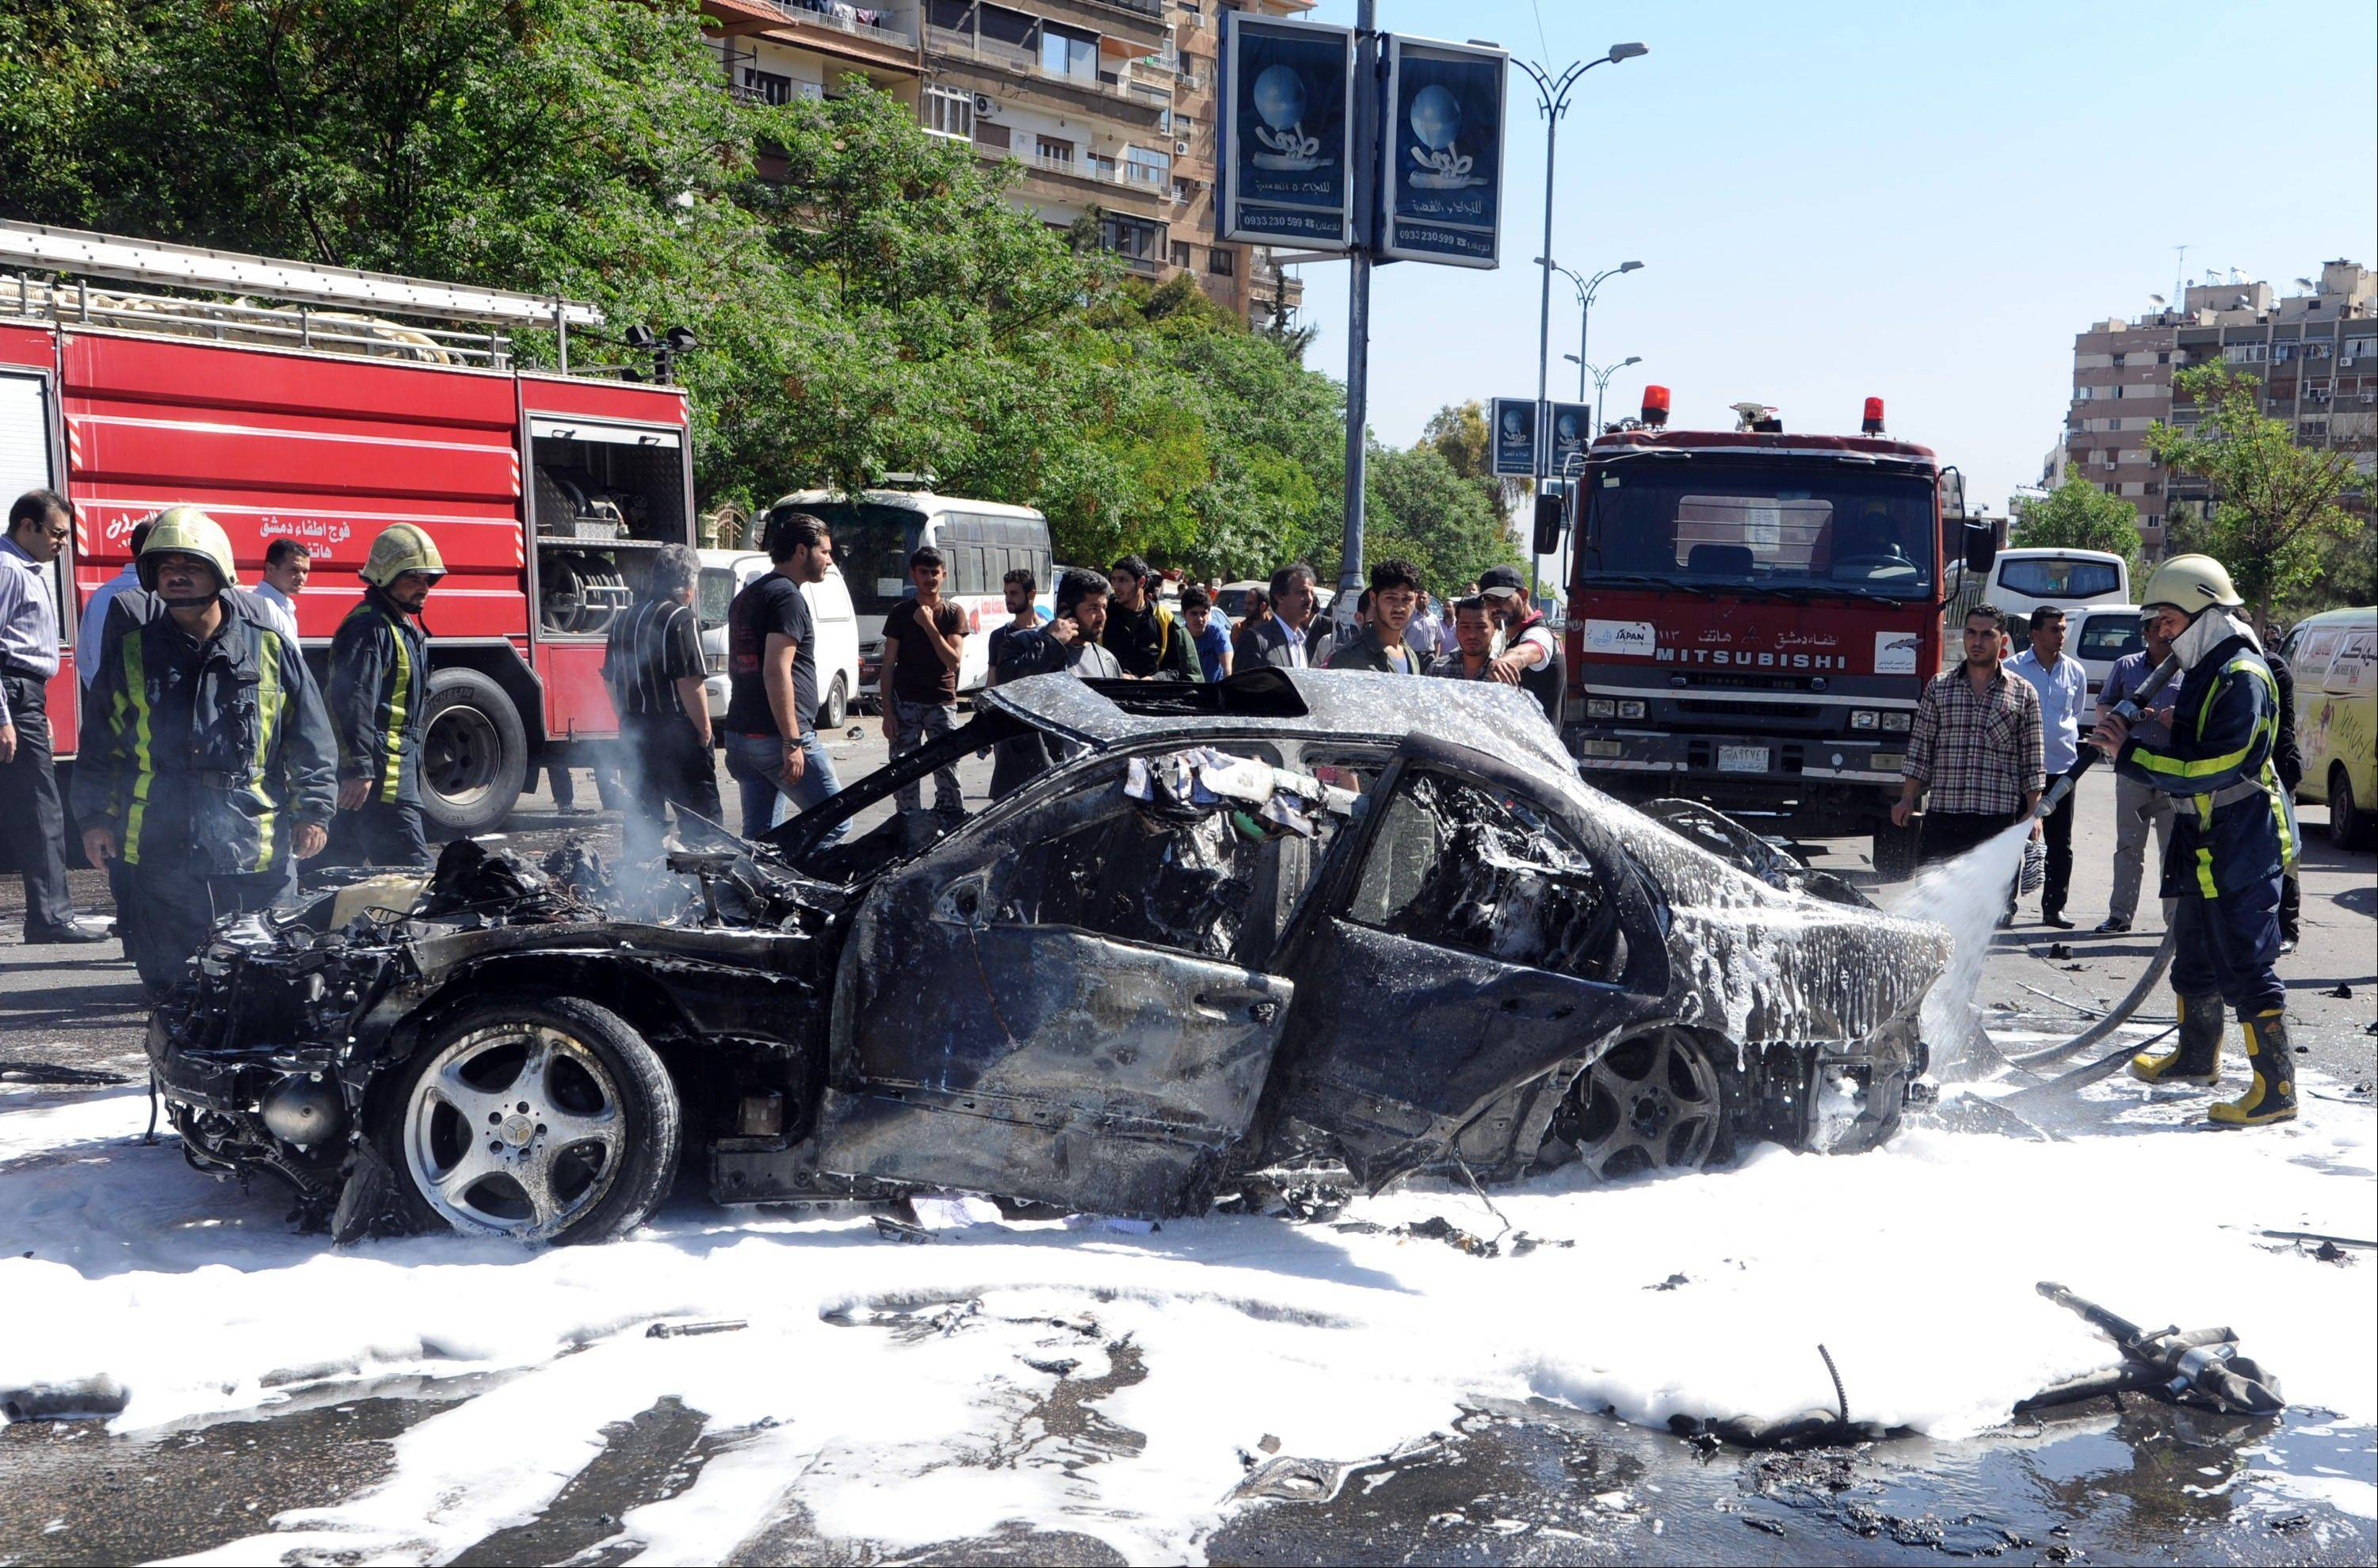 Syrian firefighters extinguish burning cars after a car bomb exploded in the capital�s western neighborhood of Mazzeh, in Damascus, Syria, Monday. State-run Syrian TV says the country�s Prime Minister Wael al-Halqi has escaped an assassination attempt when a bomb went off near his convoy.